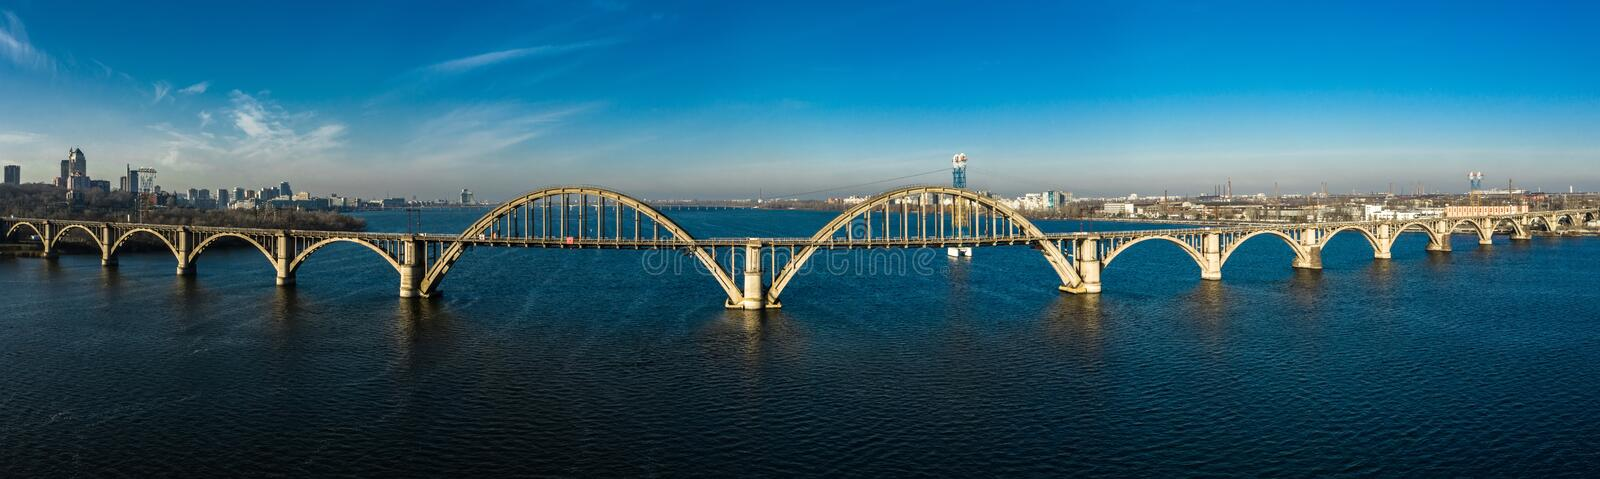 Aerial panoramic view on old arch railway Merefo-Kherson bridge across the Dnieper river in Dnepropetrovsk, Ukraine.  royalty free stock image